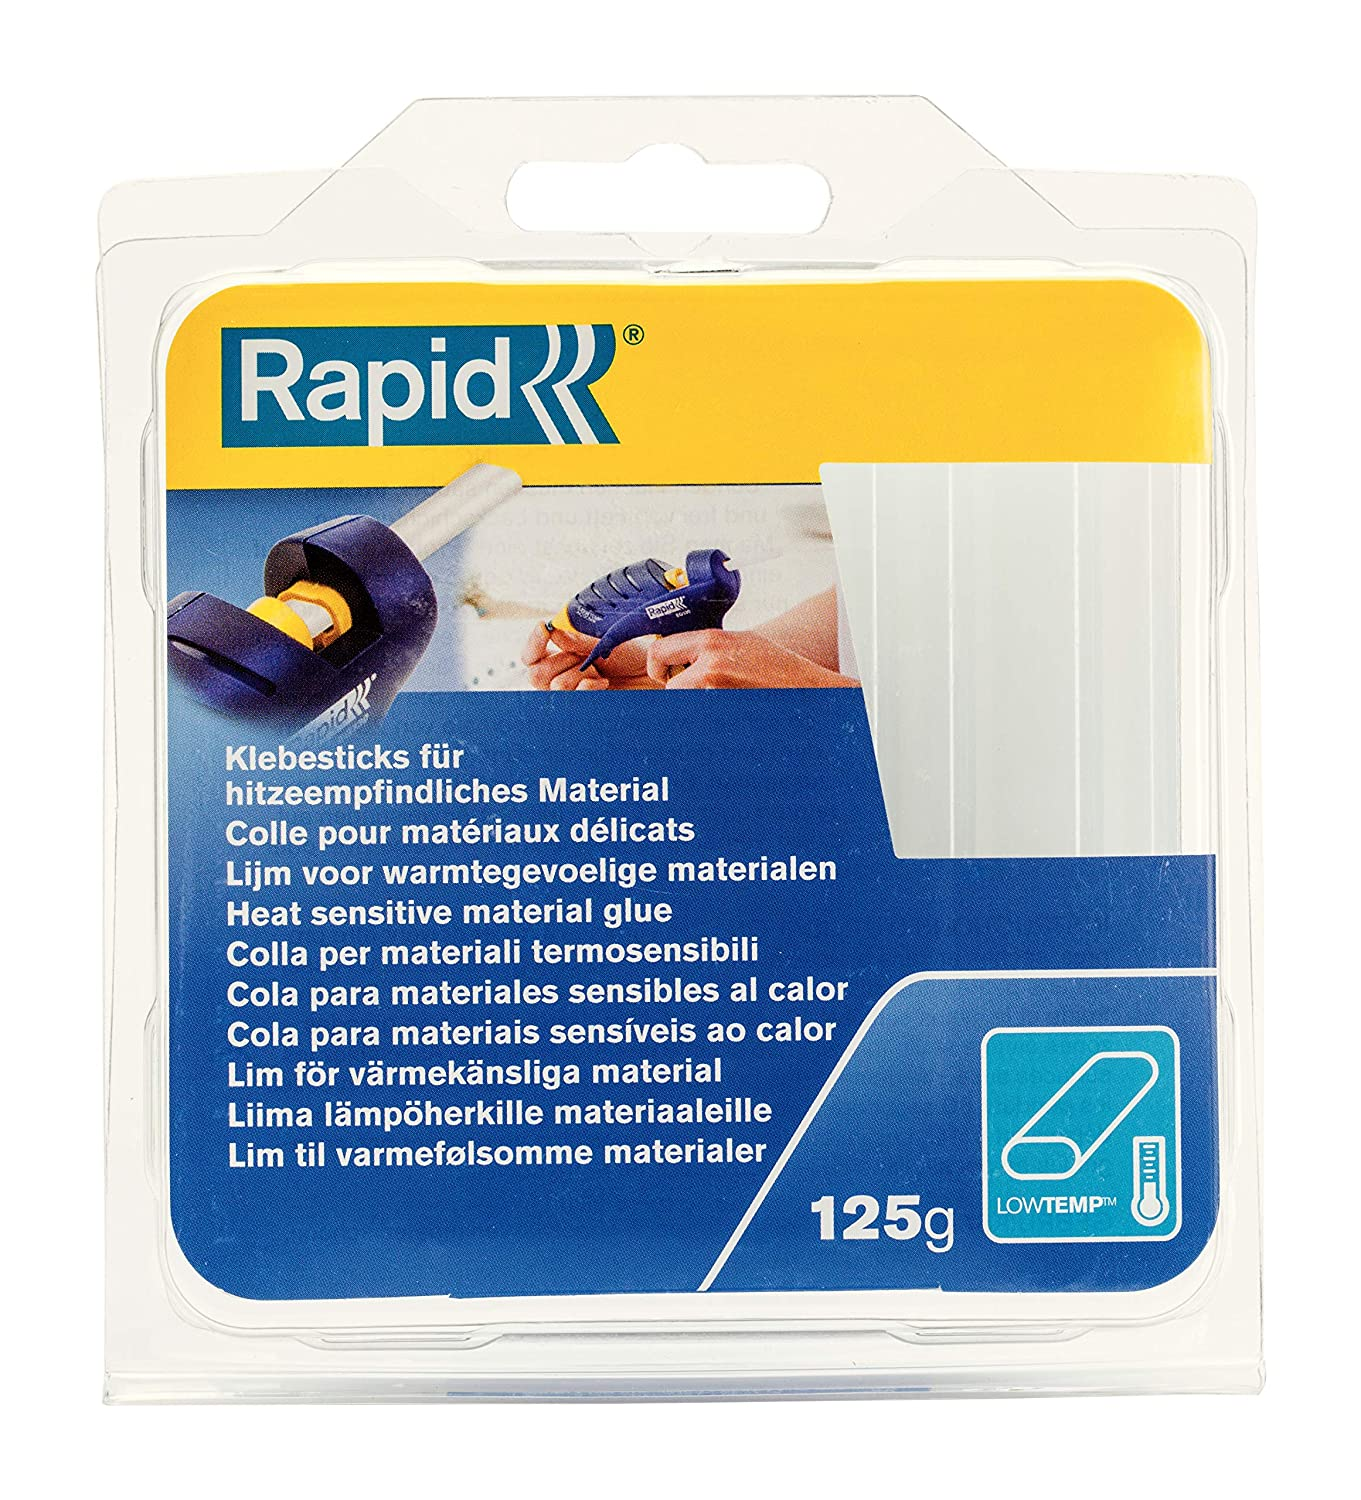 Rapid Multipurpose Transparent and Oval Hot Glue Sticks for Heat Sensitive Objects, Length: 94 mm, 125 g, 40107349